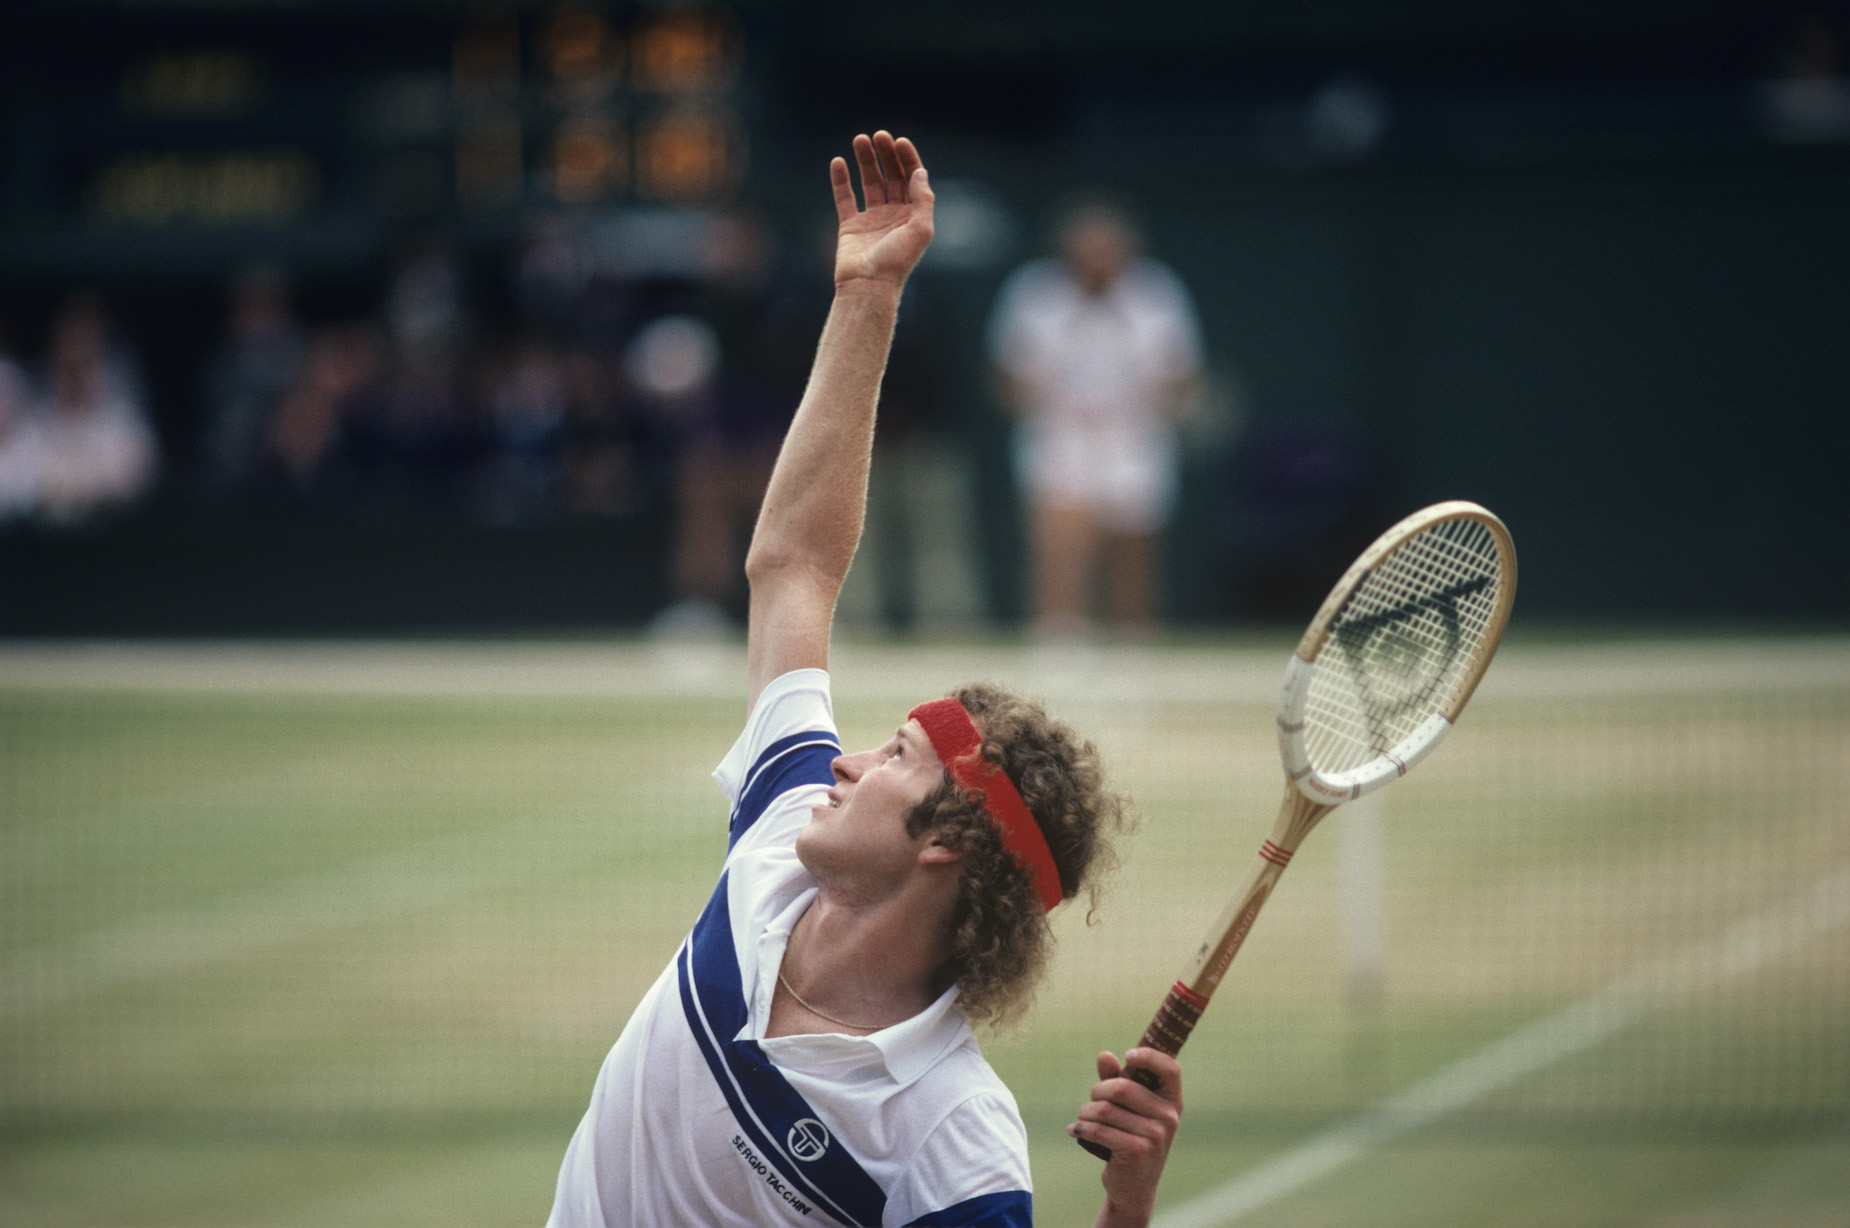 John McEnroe could have made $1 million for a single match against Bjorn Borg but turned it down.